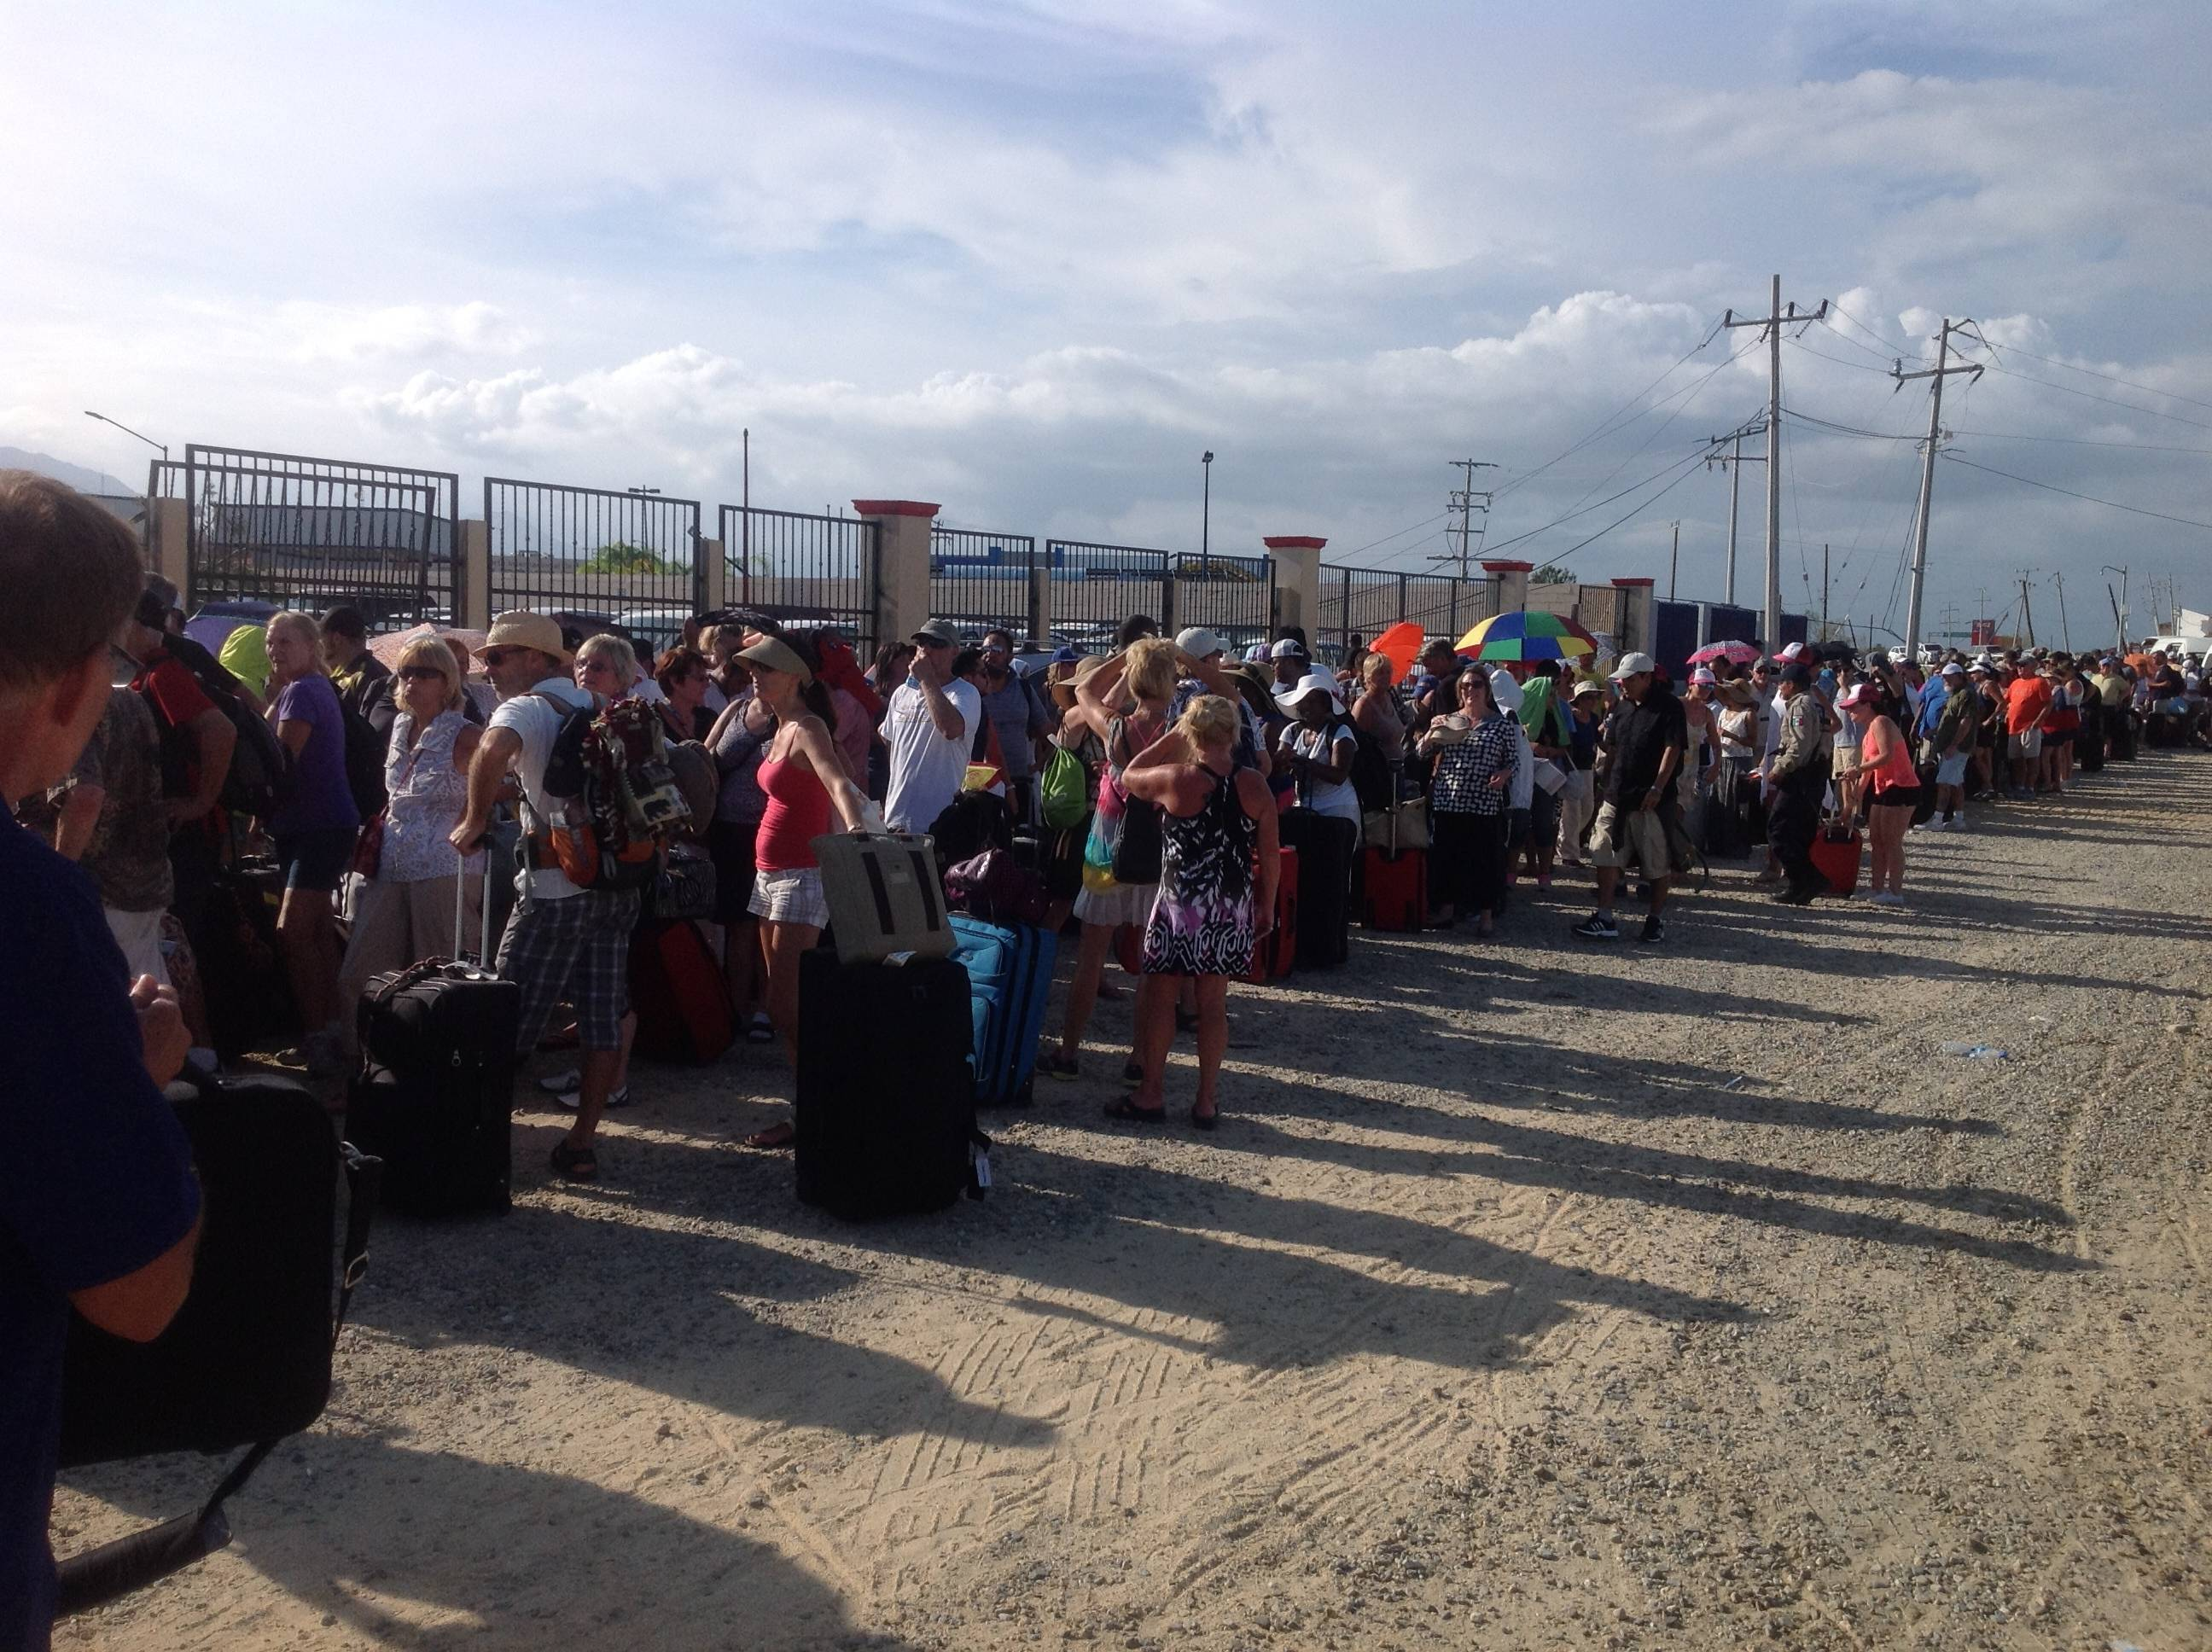 the line at the airport